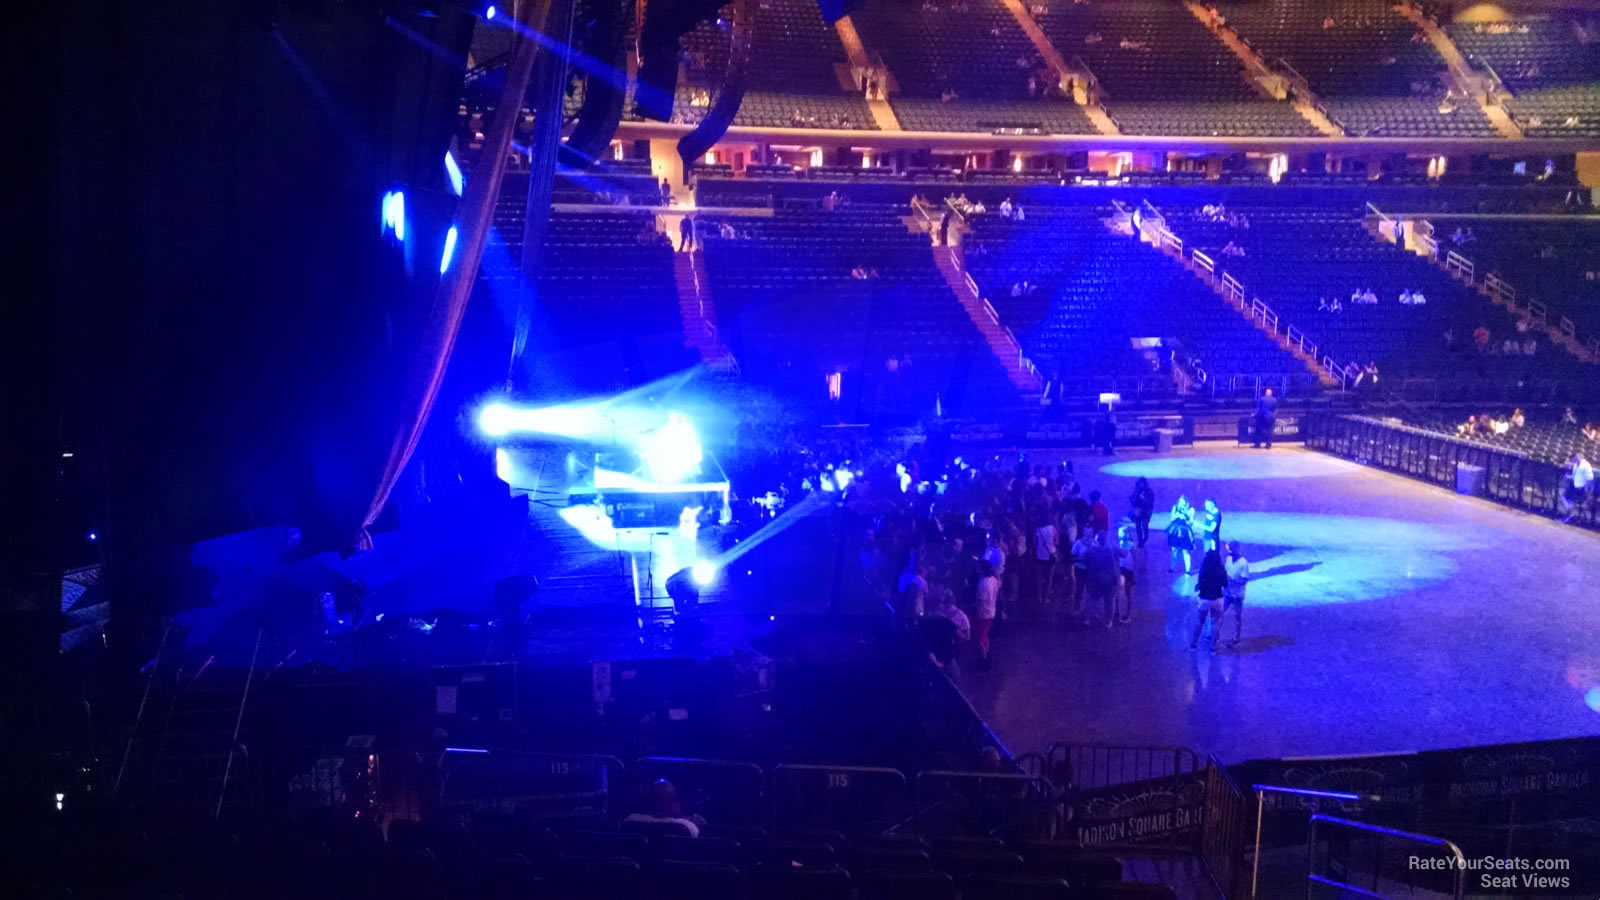 Madison Square Garden Section 115 Concert Seating